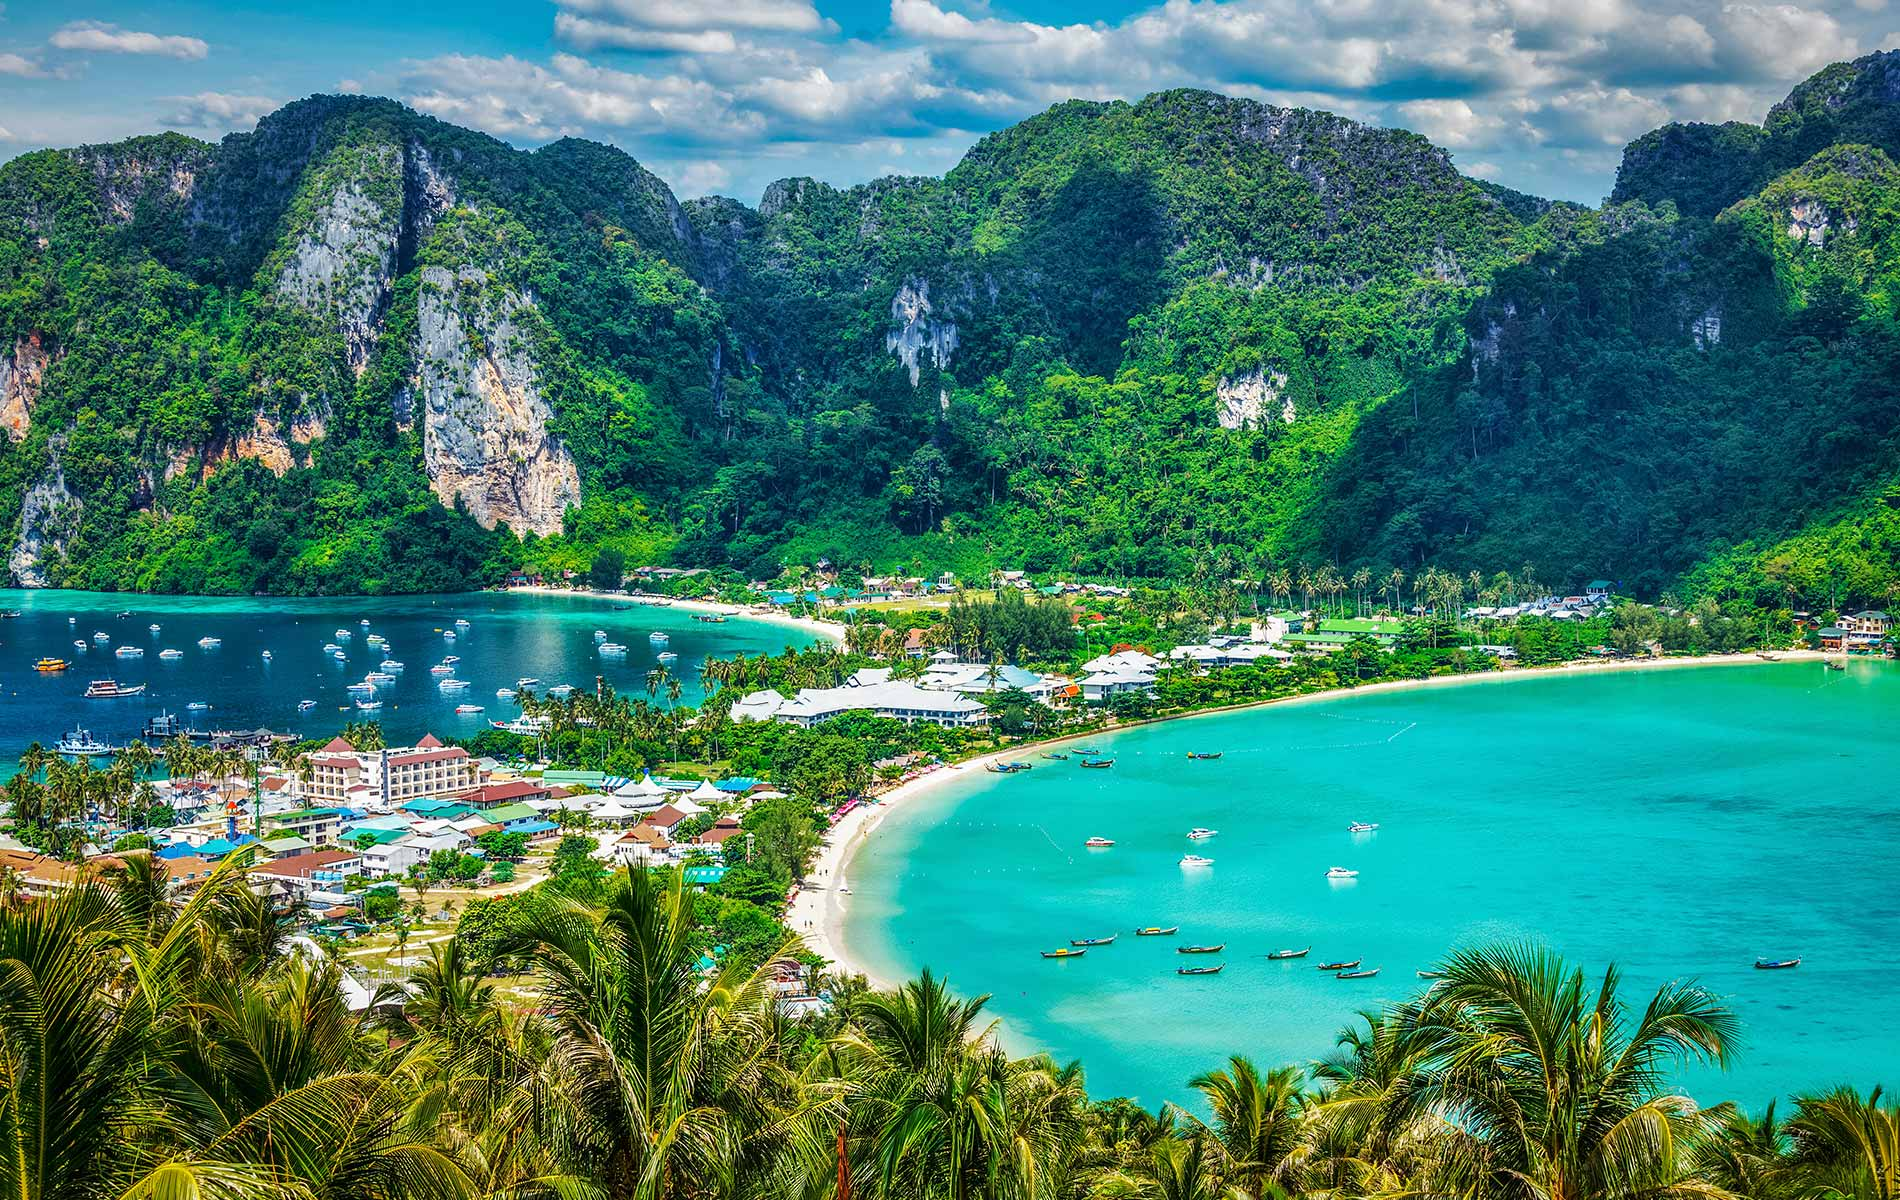 Bird's eye view of the tropical Phi Phi Islands in Thailand's favorite Krabi Province